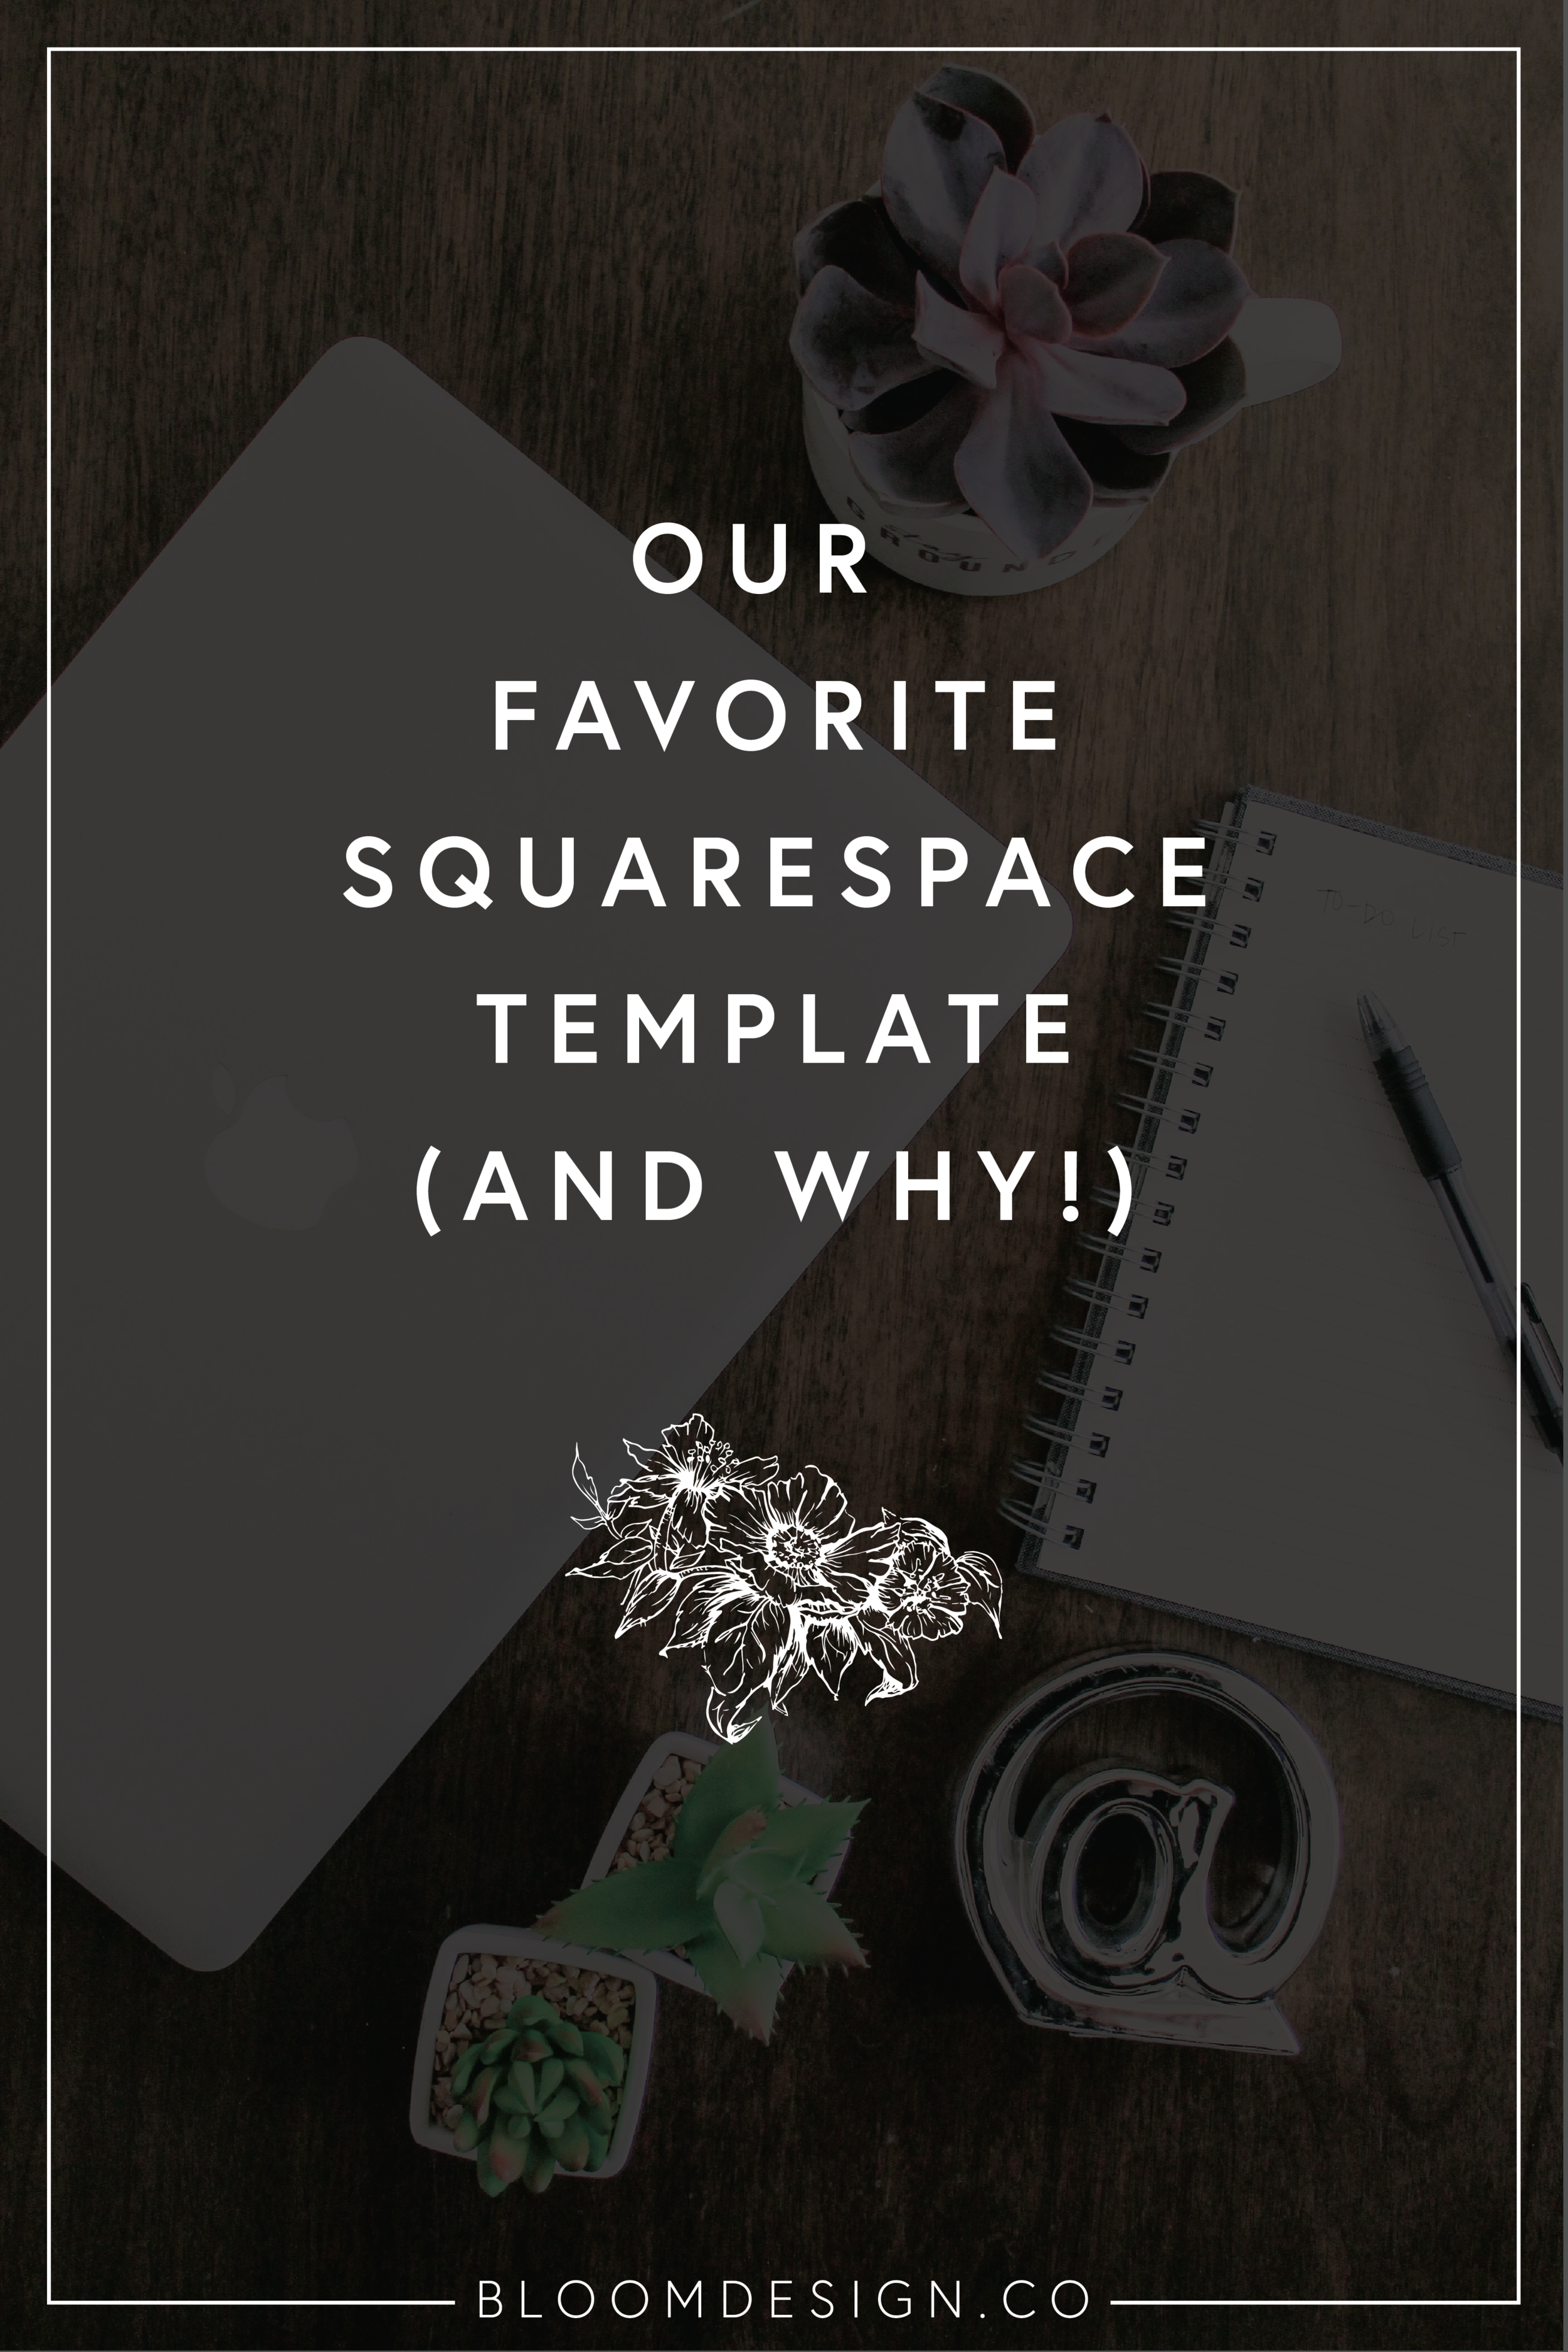 Have a hard time choosing which Squarespace template is right for you? With so many beautiful options, it's easy to get sucked in again and again and end up changing your design several times. We have a favorite template that we're talking all about in this blog post! #girlboss #bossbabe #momboss #sidehustle #squarespace #websitedesign #DIYwebsite #webdesign #squarespacedesigner #squarespacecircle #smallbusiness #shopsmall #sidegig #bizowner #wahm #workathomemom